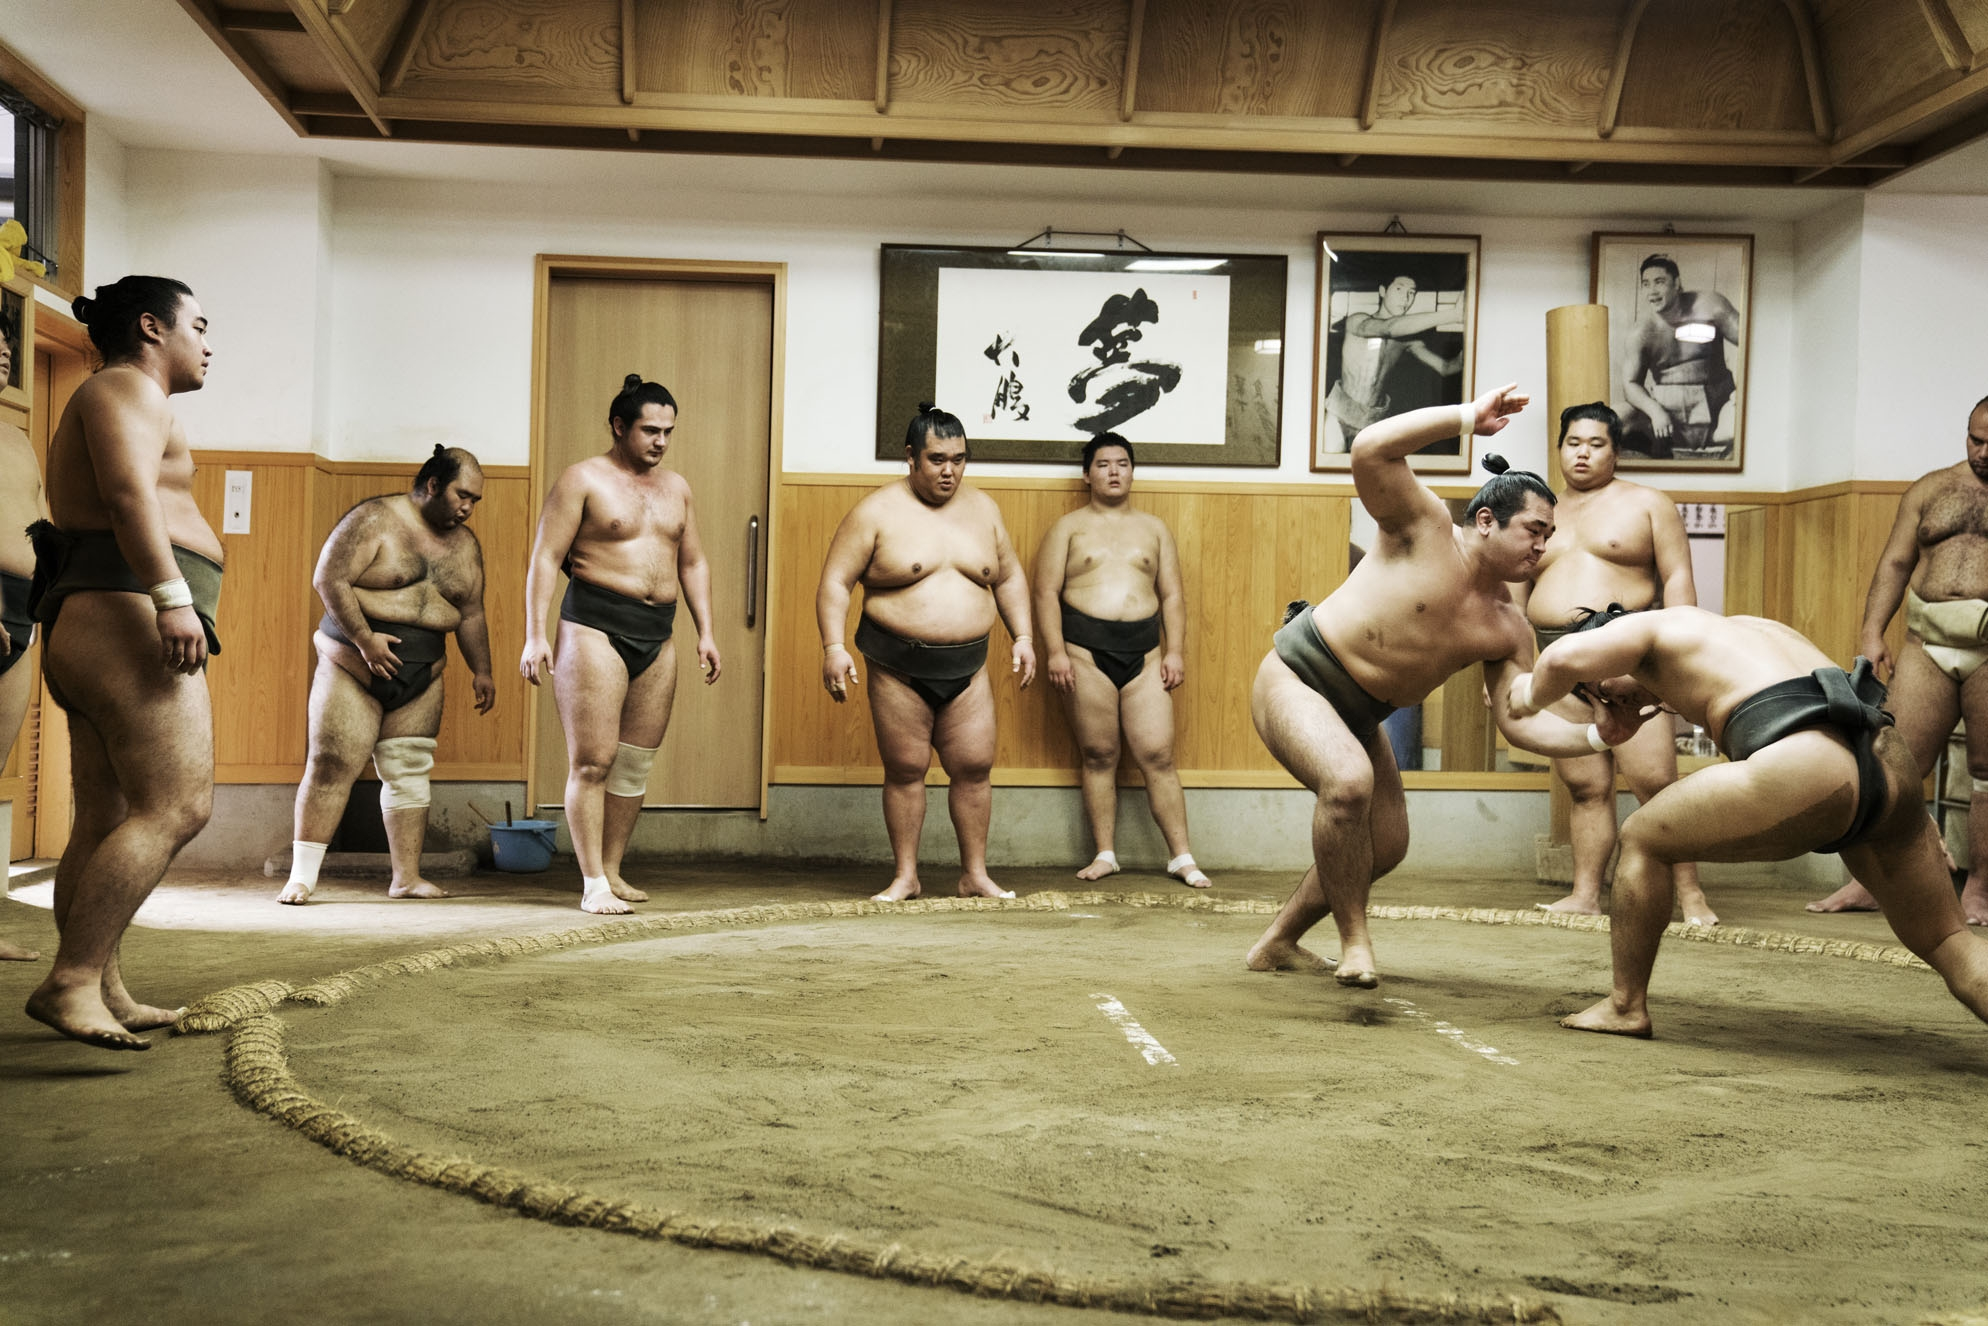 """SUMO"" Ongoing series.  As an ongoing series I am exploring the world of the Sumo in Japan. Honoured for their strength and integrity Sumo have an honorific status in Japan and Live under strict conditions in Sumo stables. Through this project I am exploring what it means to be a Sumo and what drives these boys and men to pursue such a life."